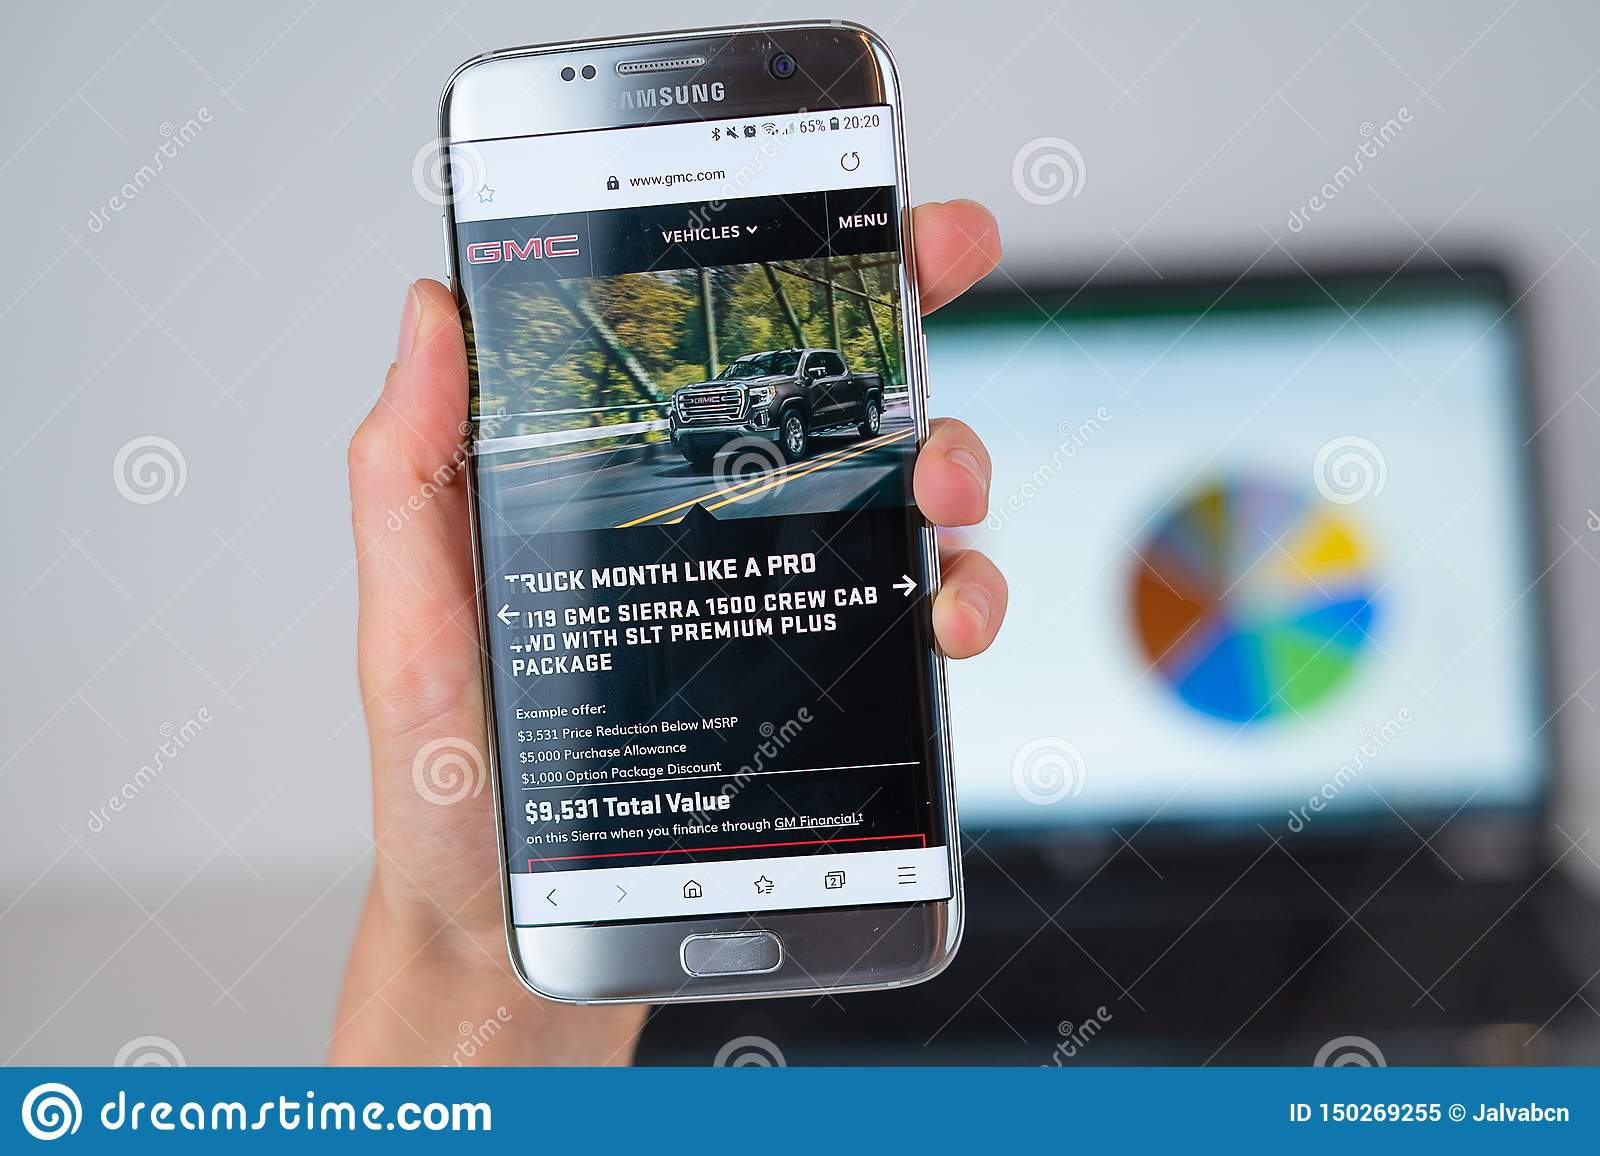 Gm Financial Phone >> Web Site Of Gmc Company On Phone Screen Editorial Image